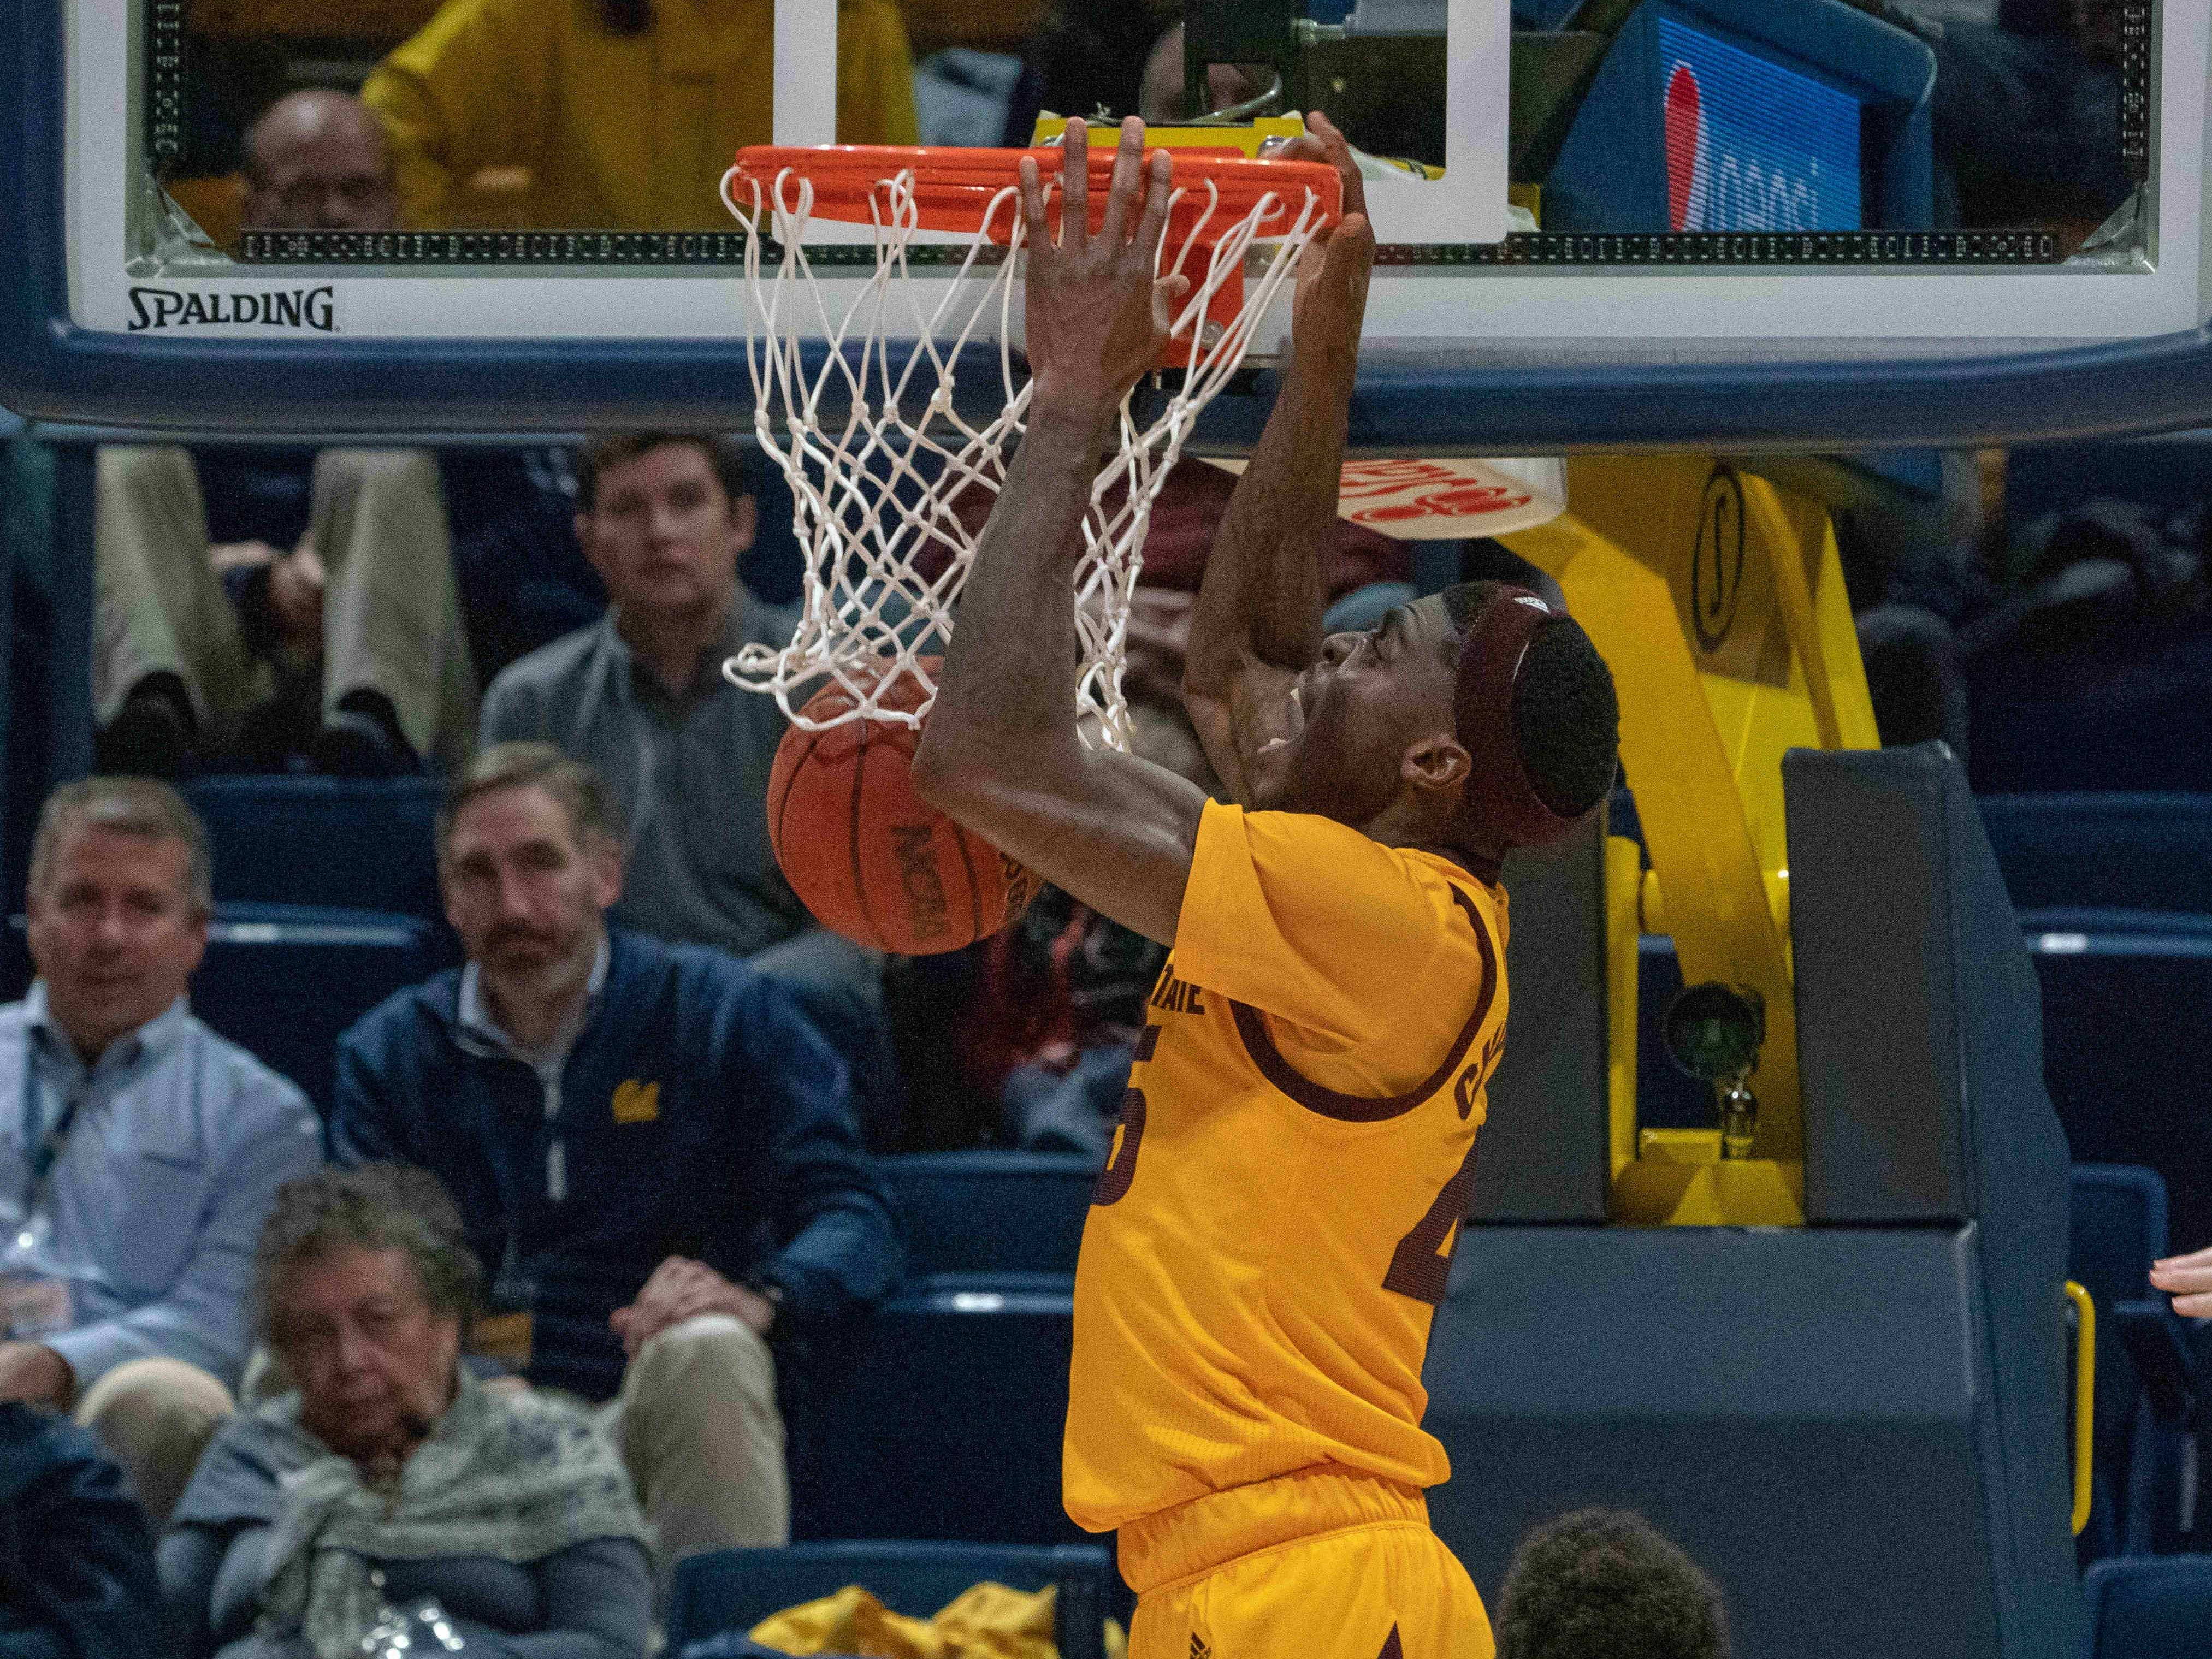 Jan 9, 2019; Berkeley, CA, USA; Arizona State Sun Devils forward Zylan Cheatham (45) dunks the basketball during the first half against the California Golden Bears at Haas Pavilion. Mandatory Credit: Neville E. Guard-USA TODAY Sports